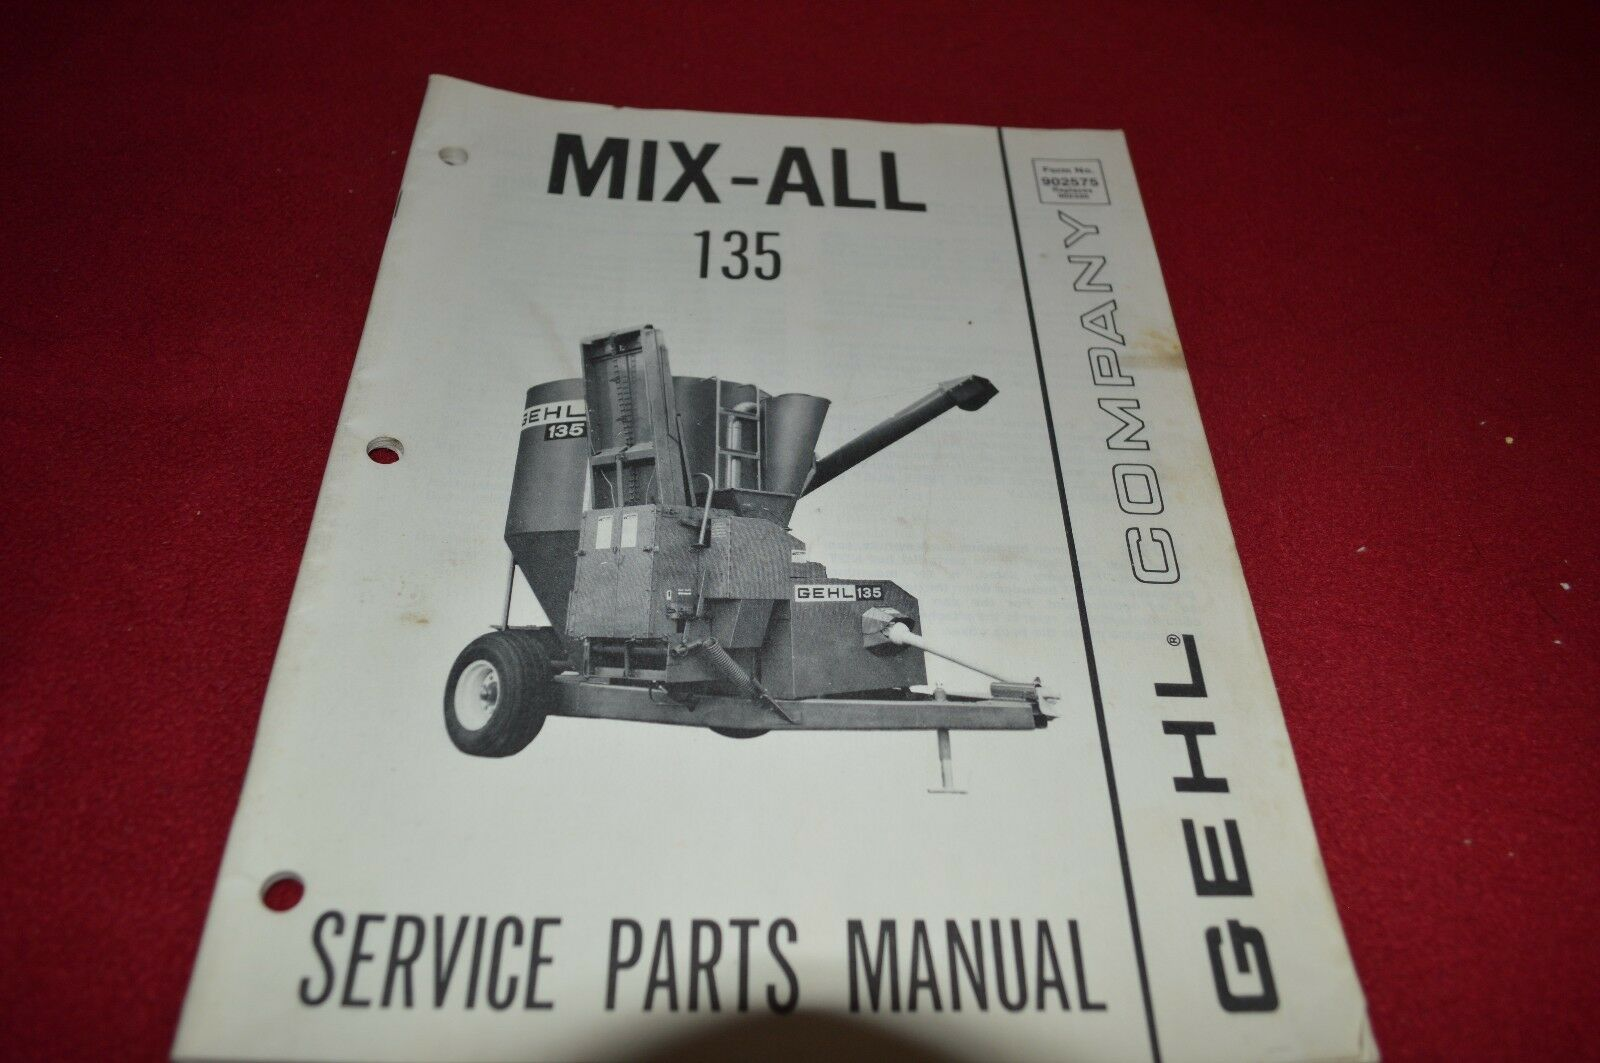 Gehl 135 Mix All Grinder Mixer Dealer's Parts Book Manual BVPA 1 of 1Only 1  available ...